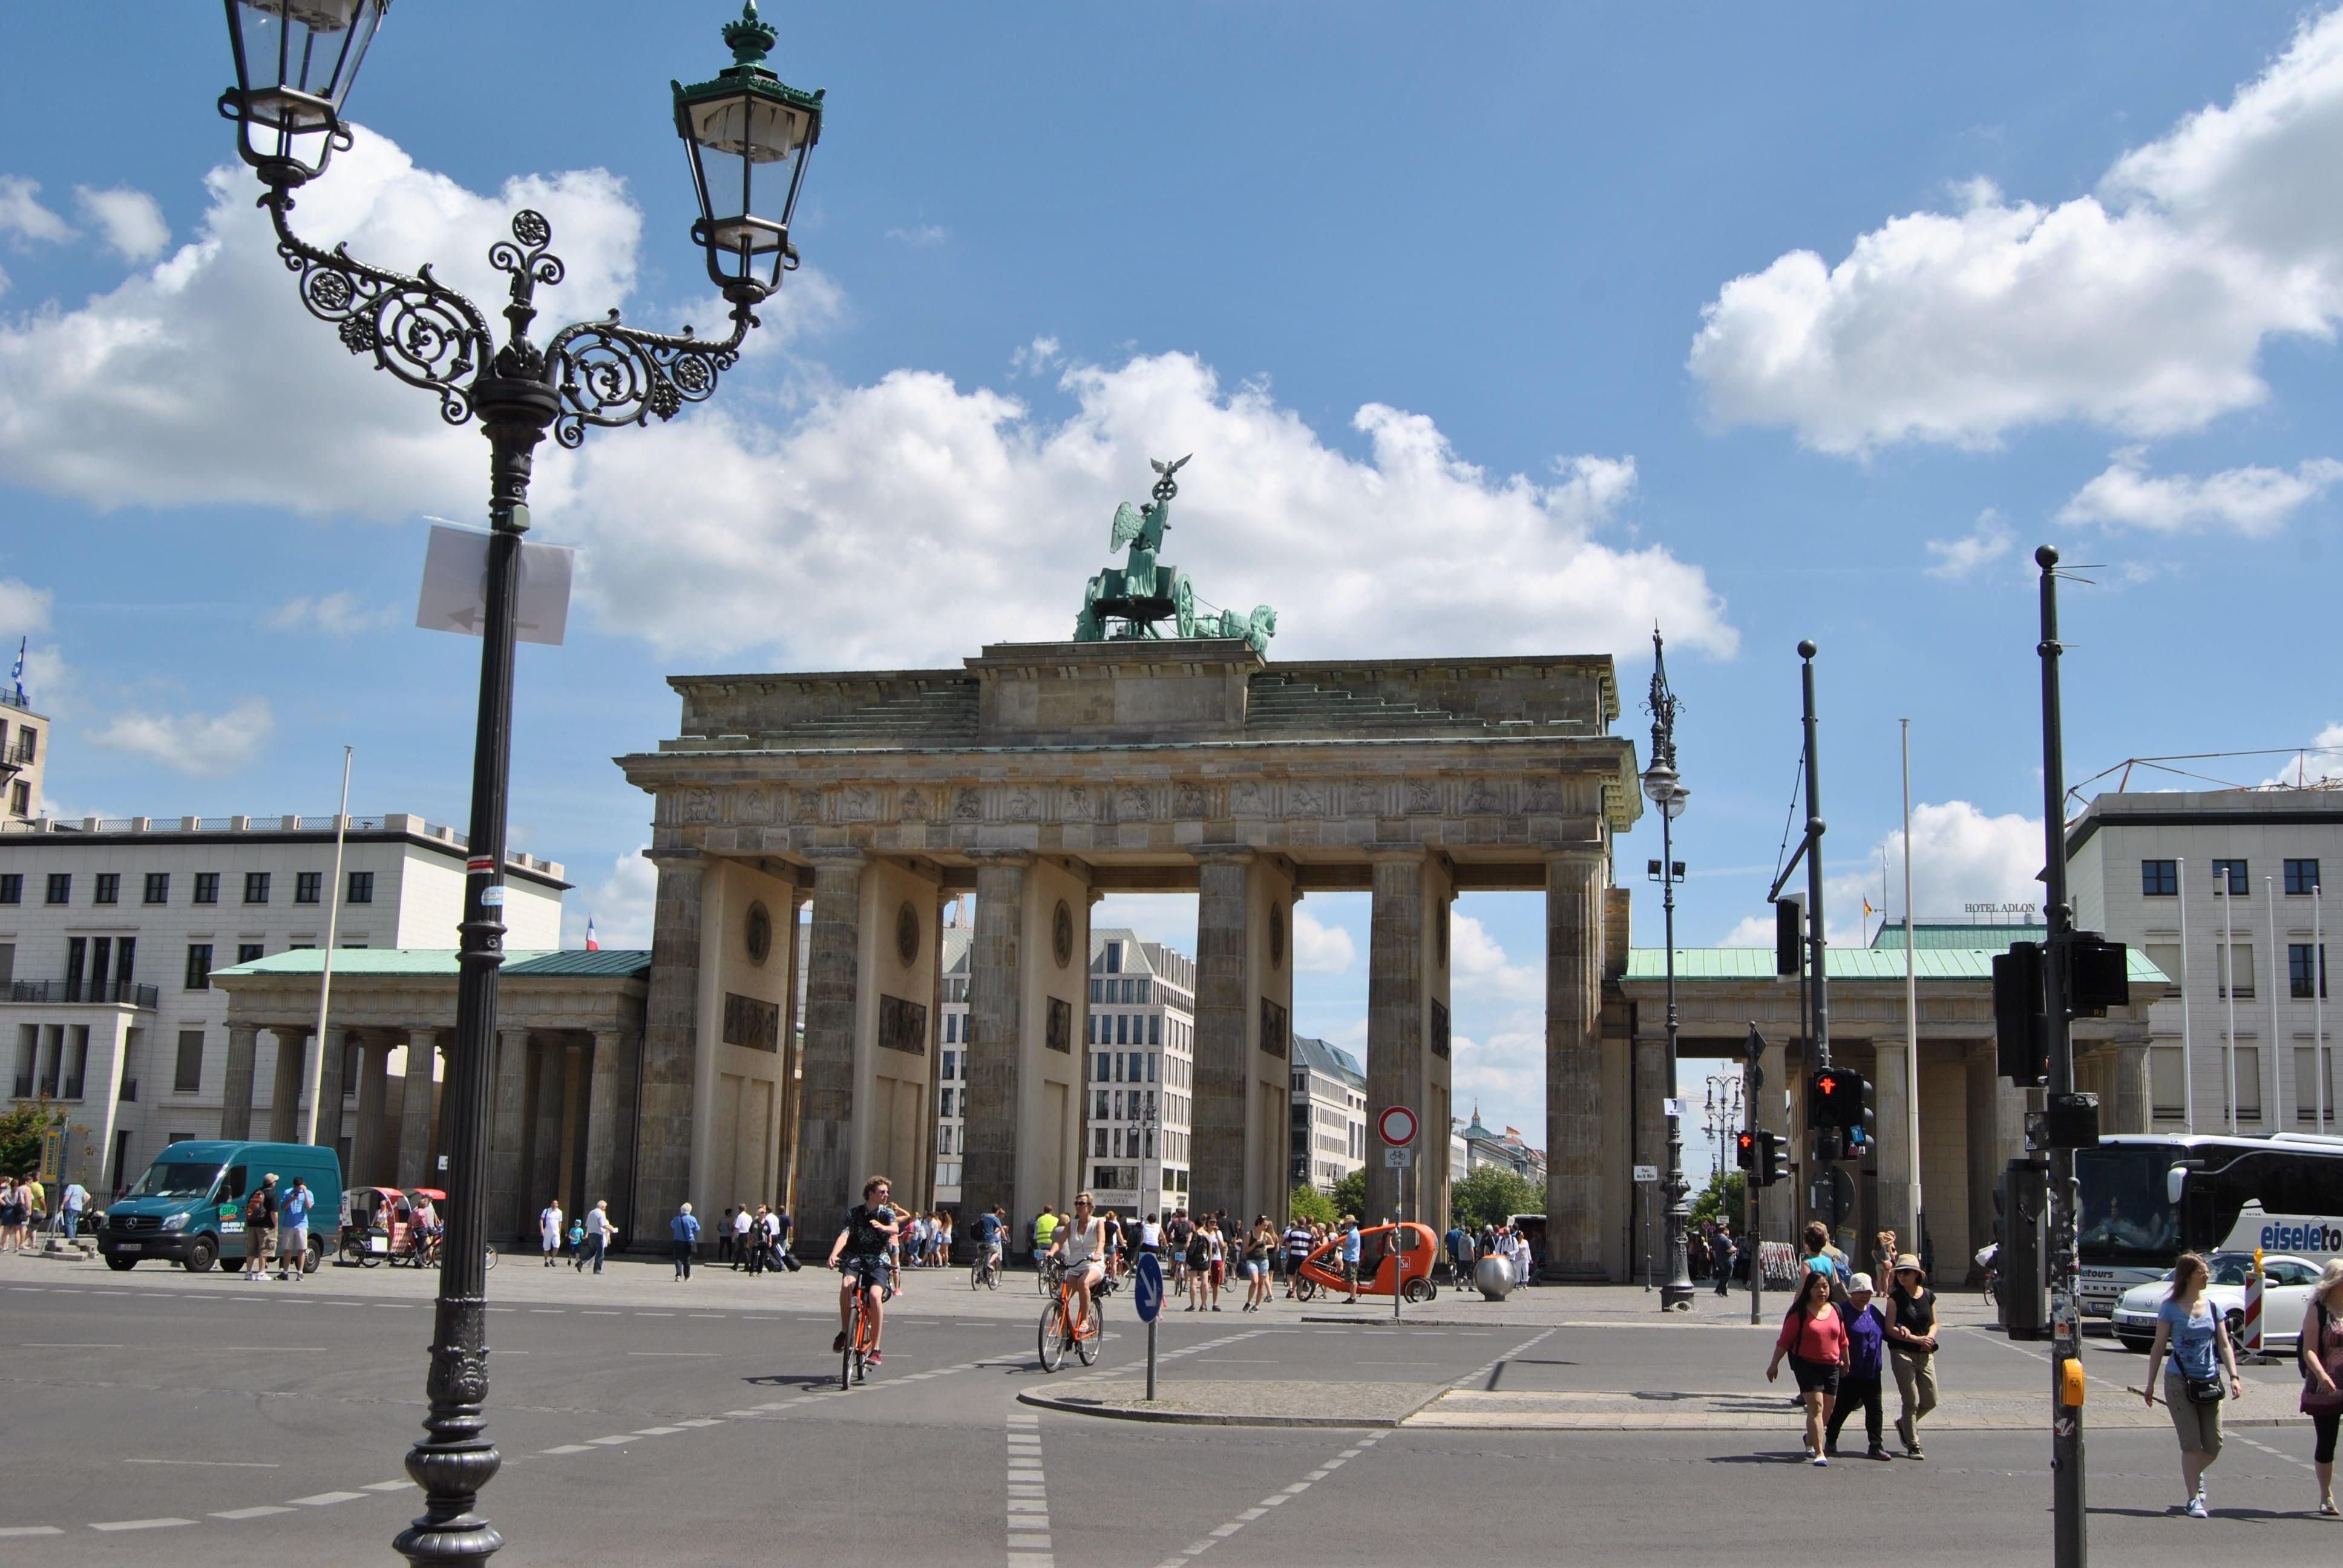 Stadium in Brandenburg Gate